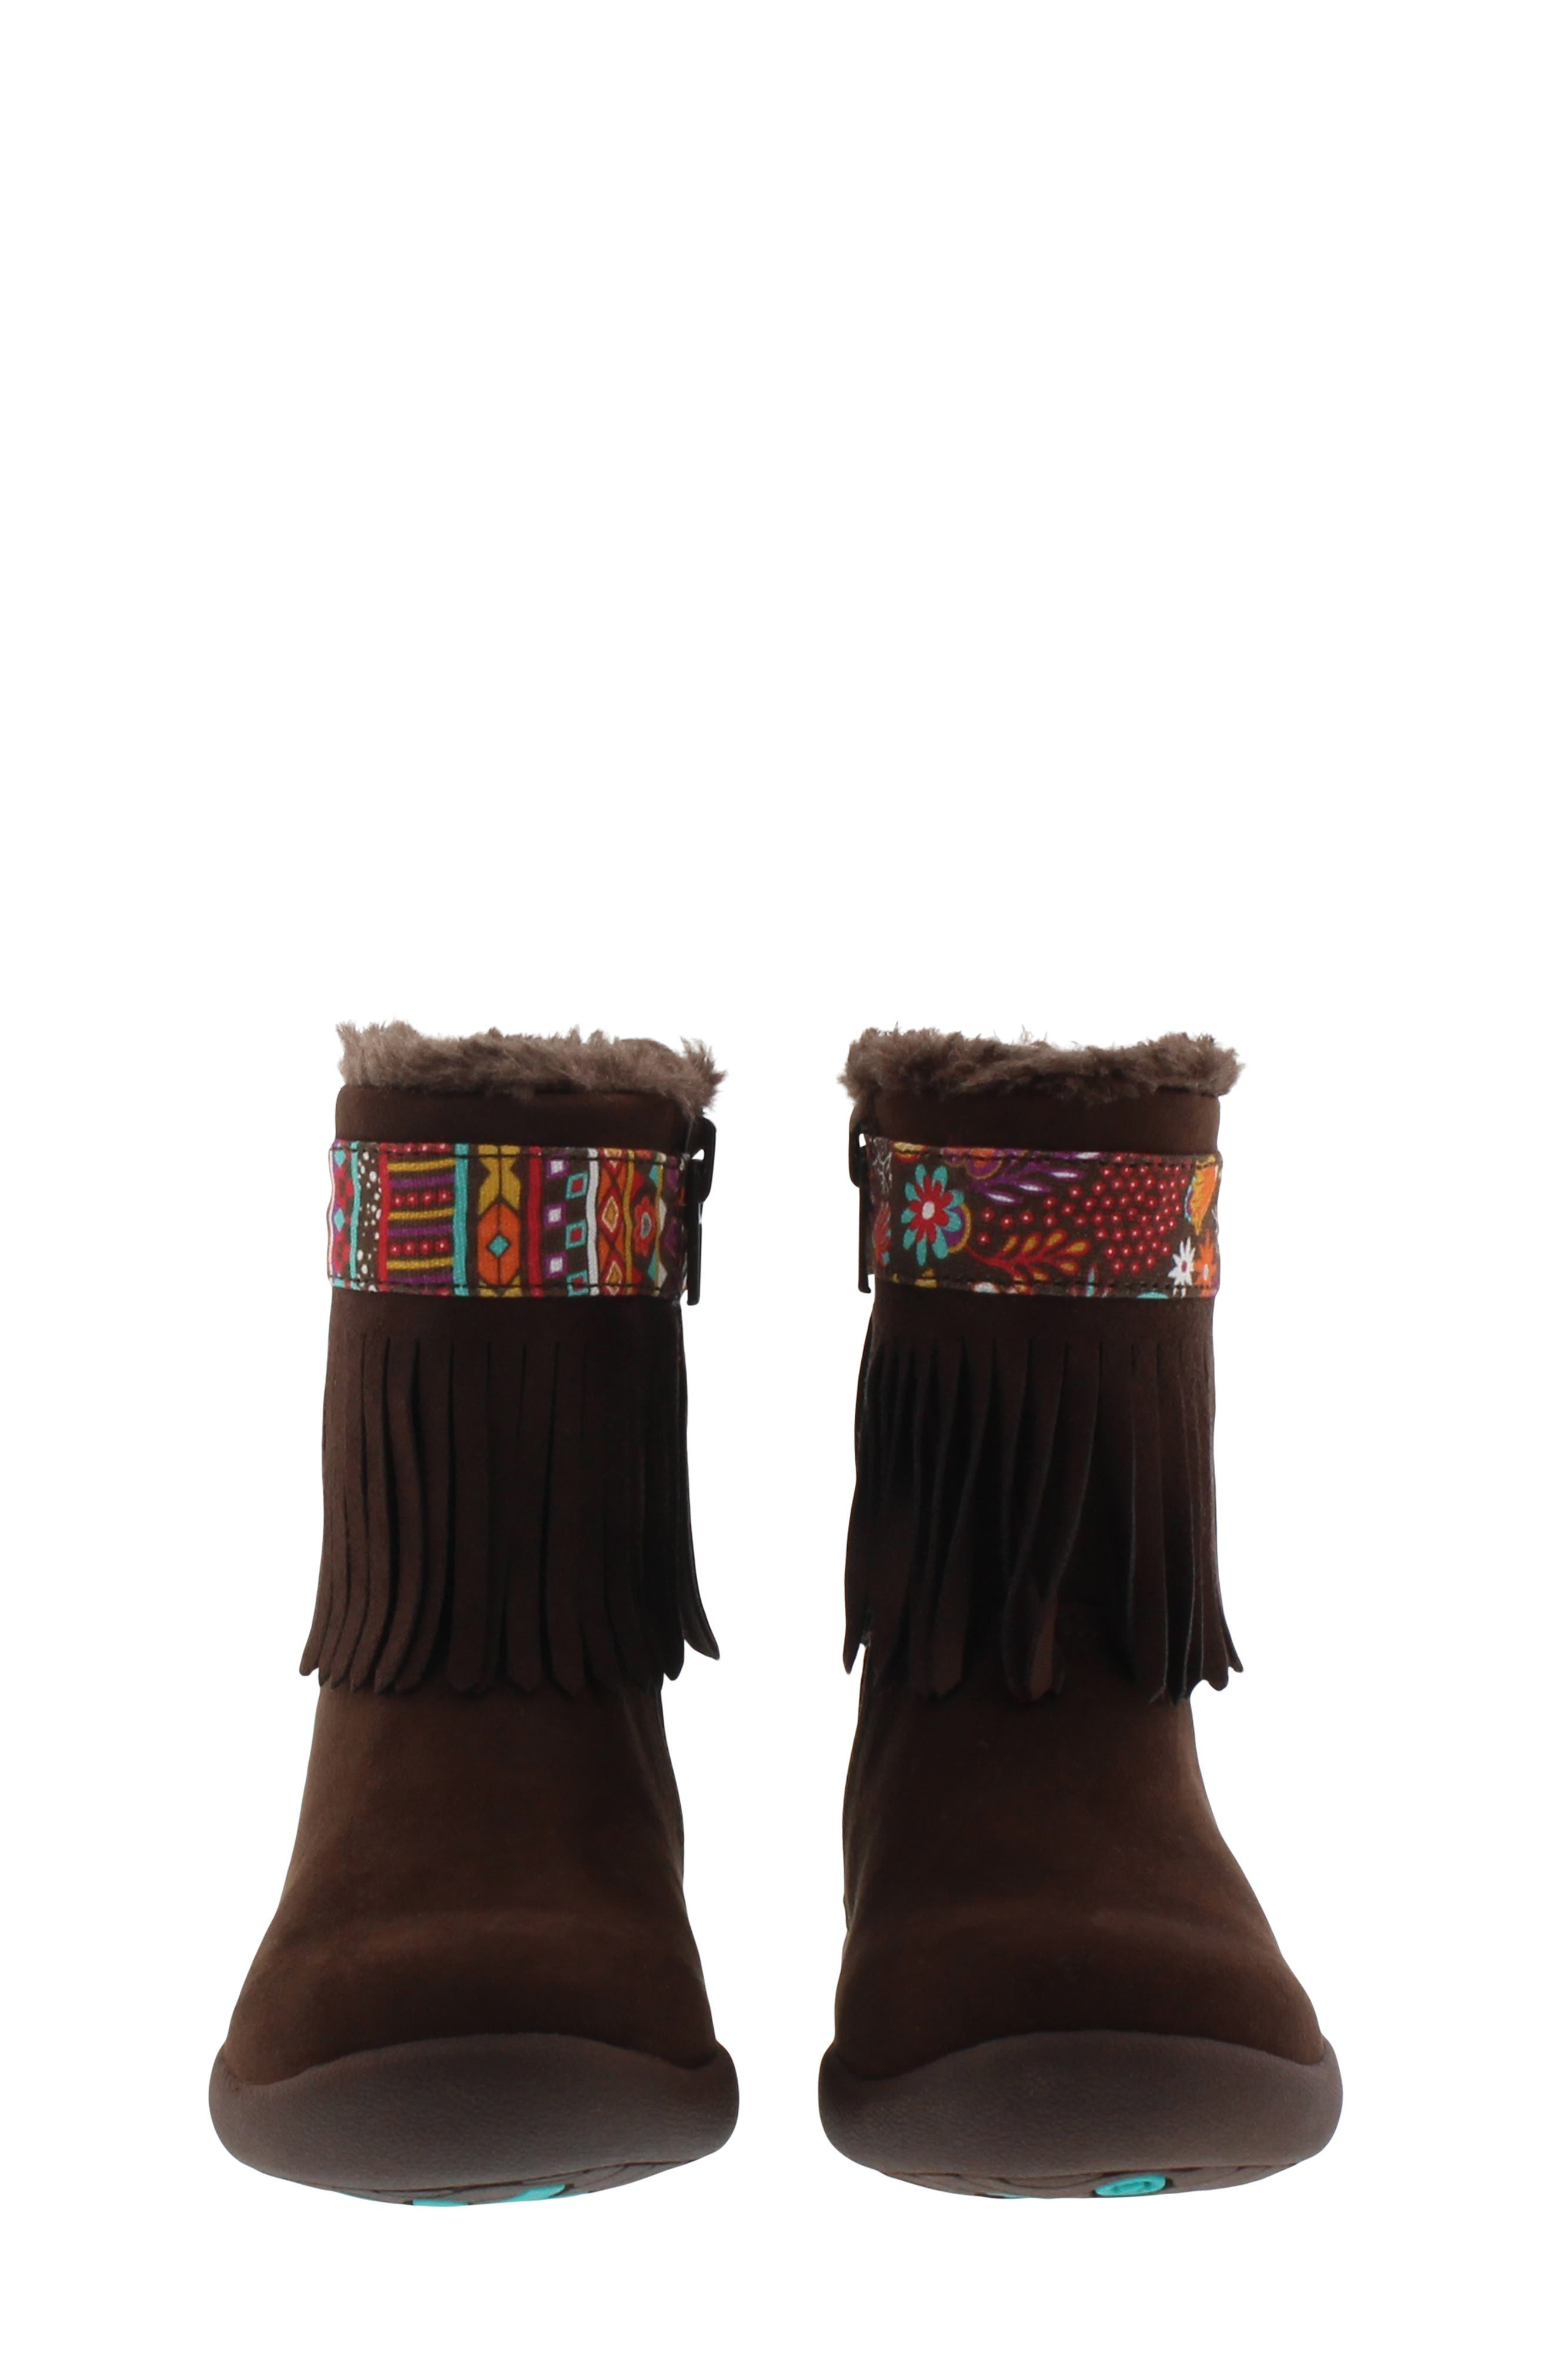 CHOOZE, Faux Fur Fringed Hope Bootie, Alternate thumbnail 4, color, BROWN